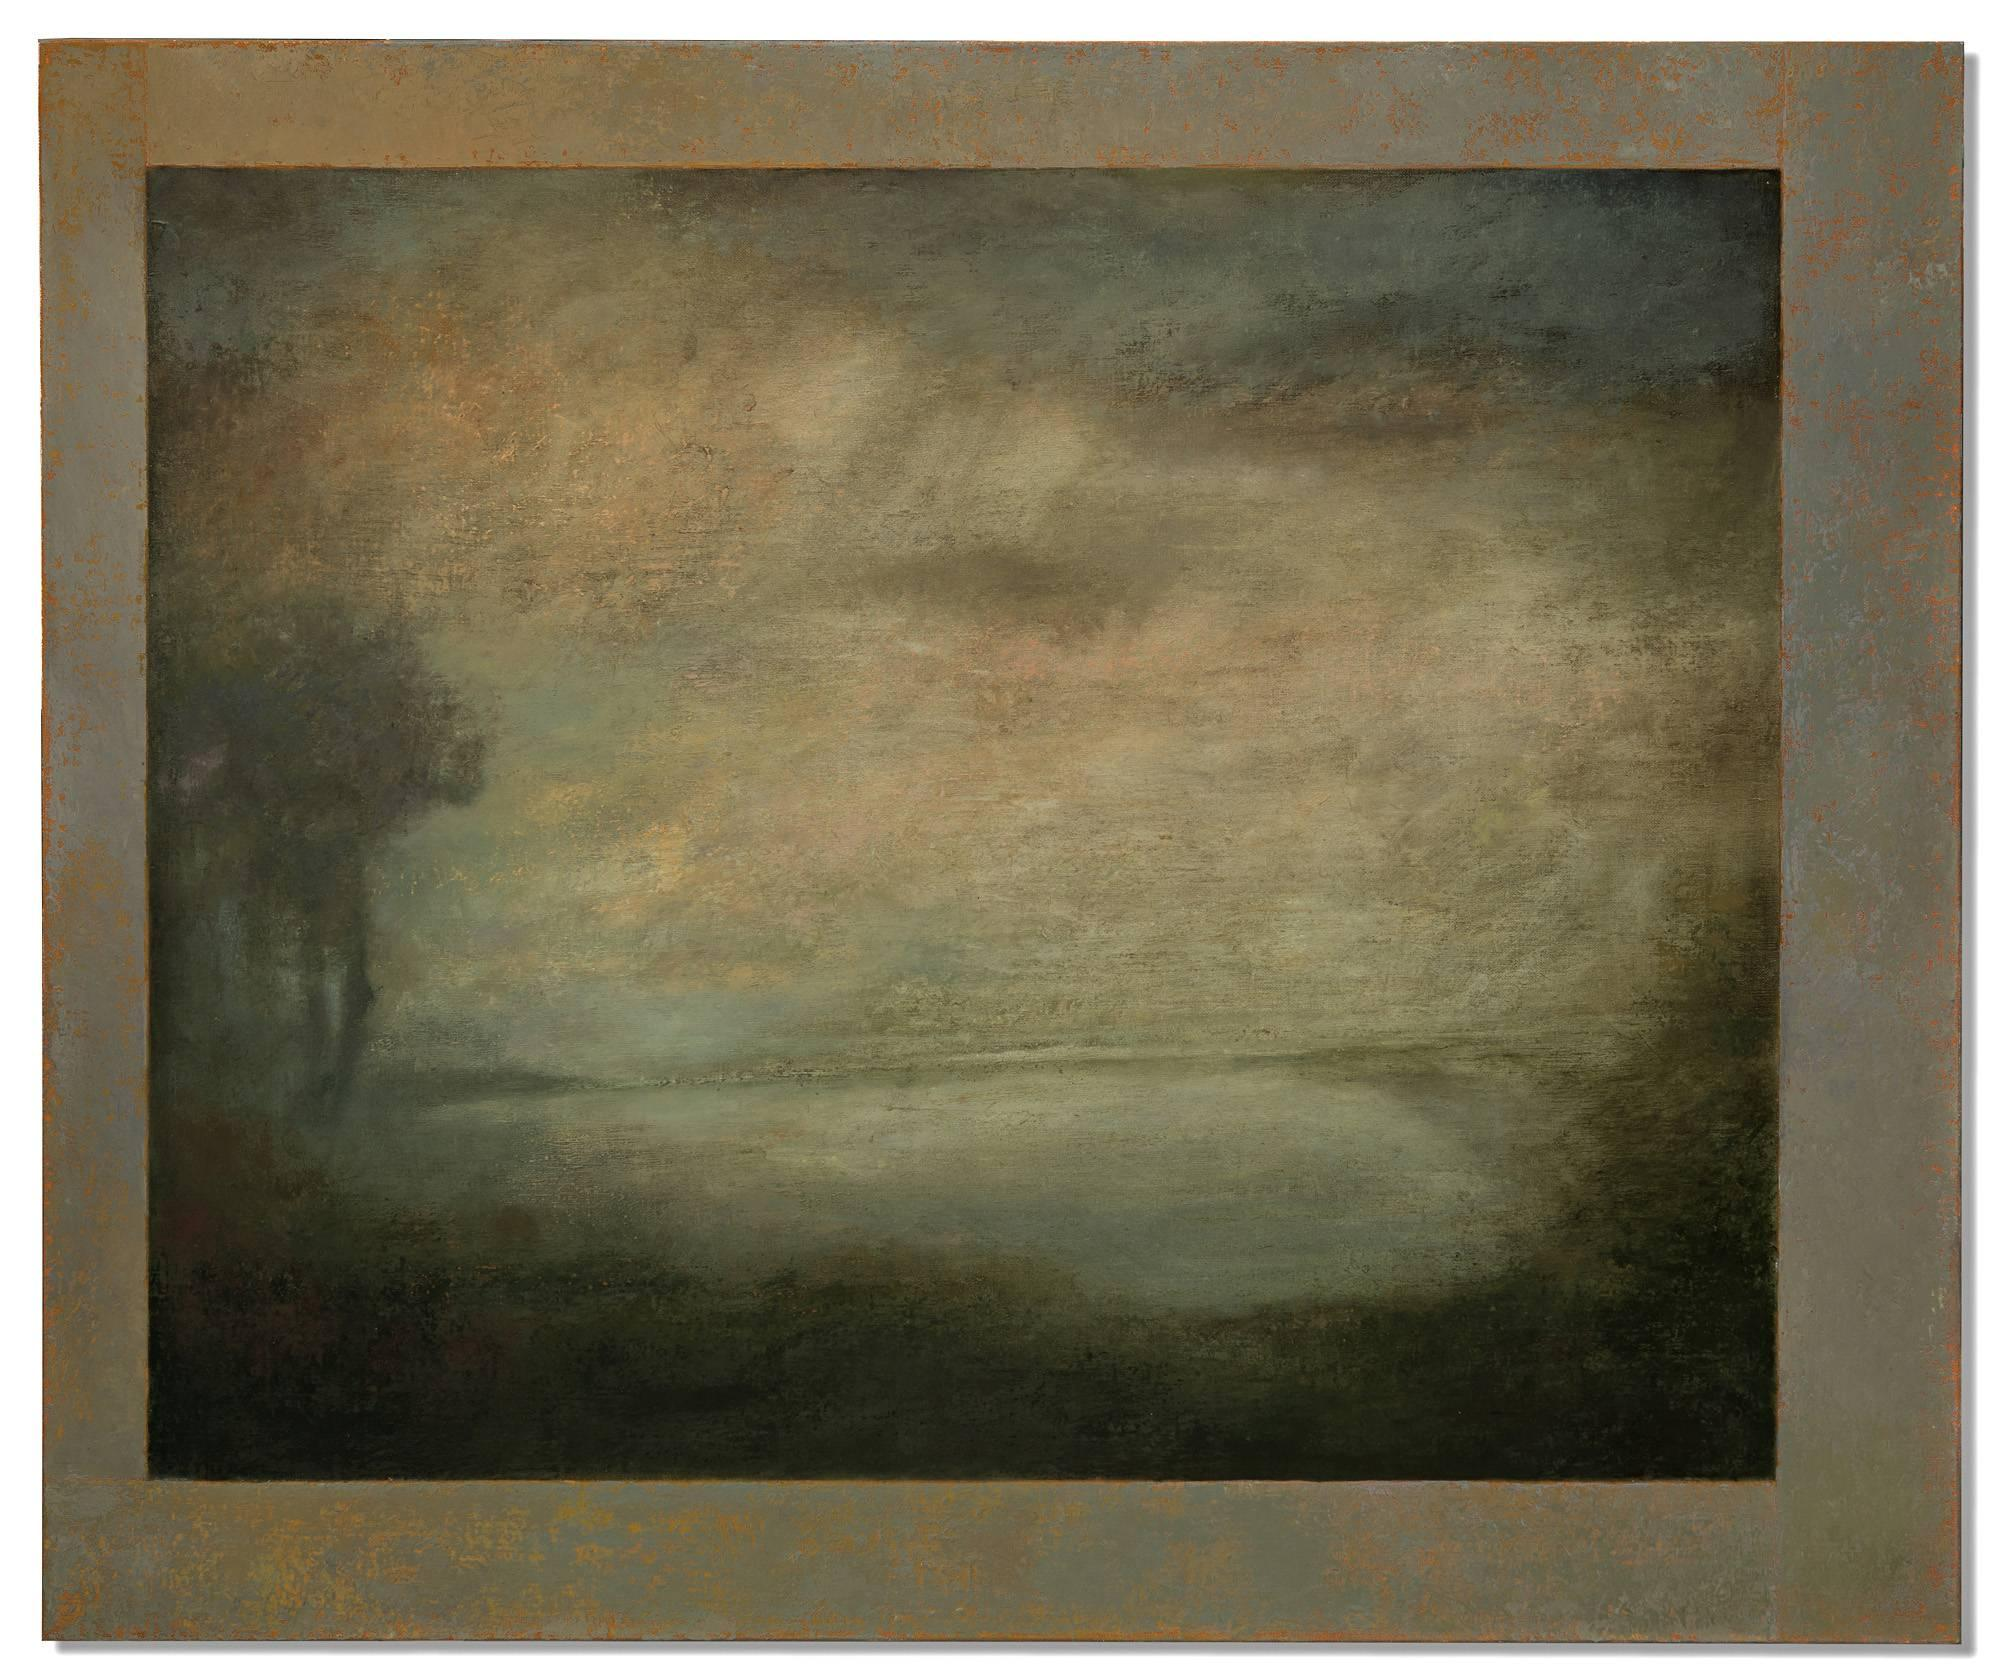 Opening No. 51 (Modern, Hudson River Landscape Painting in Romanticist Style)